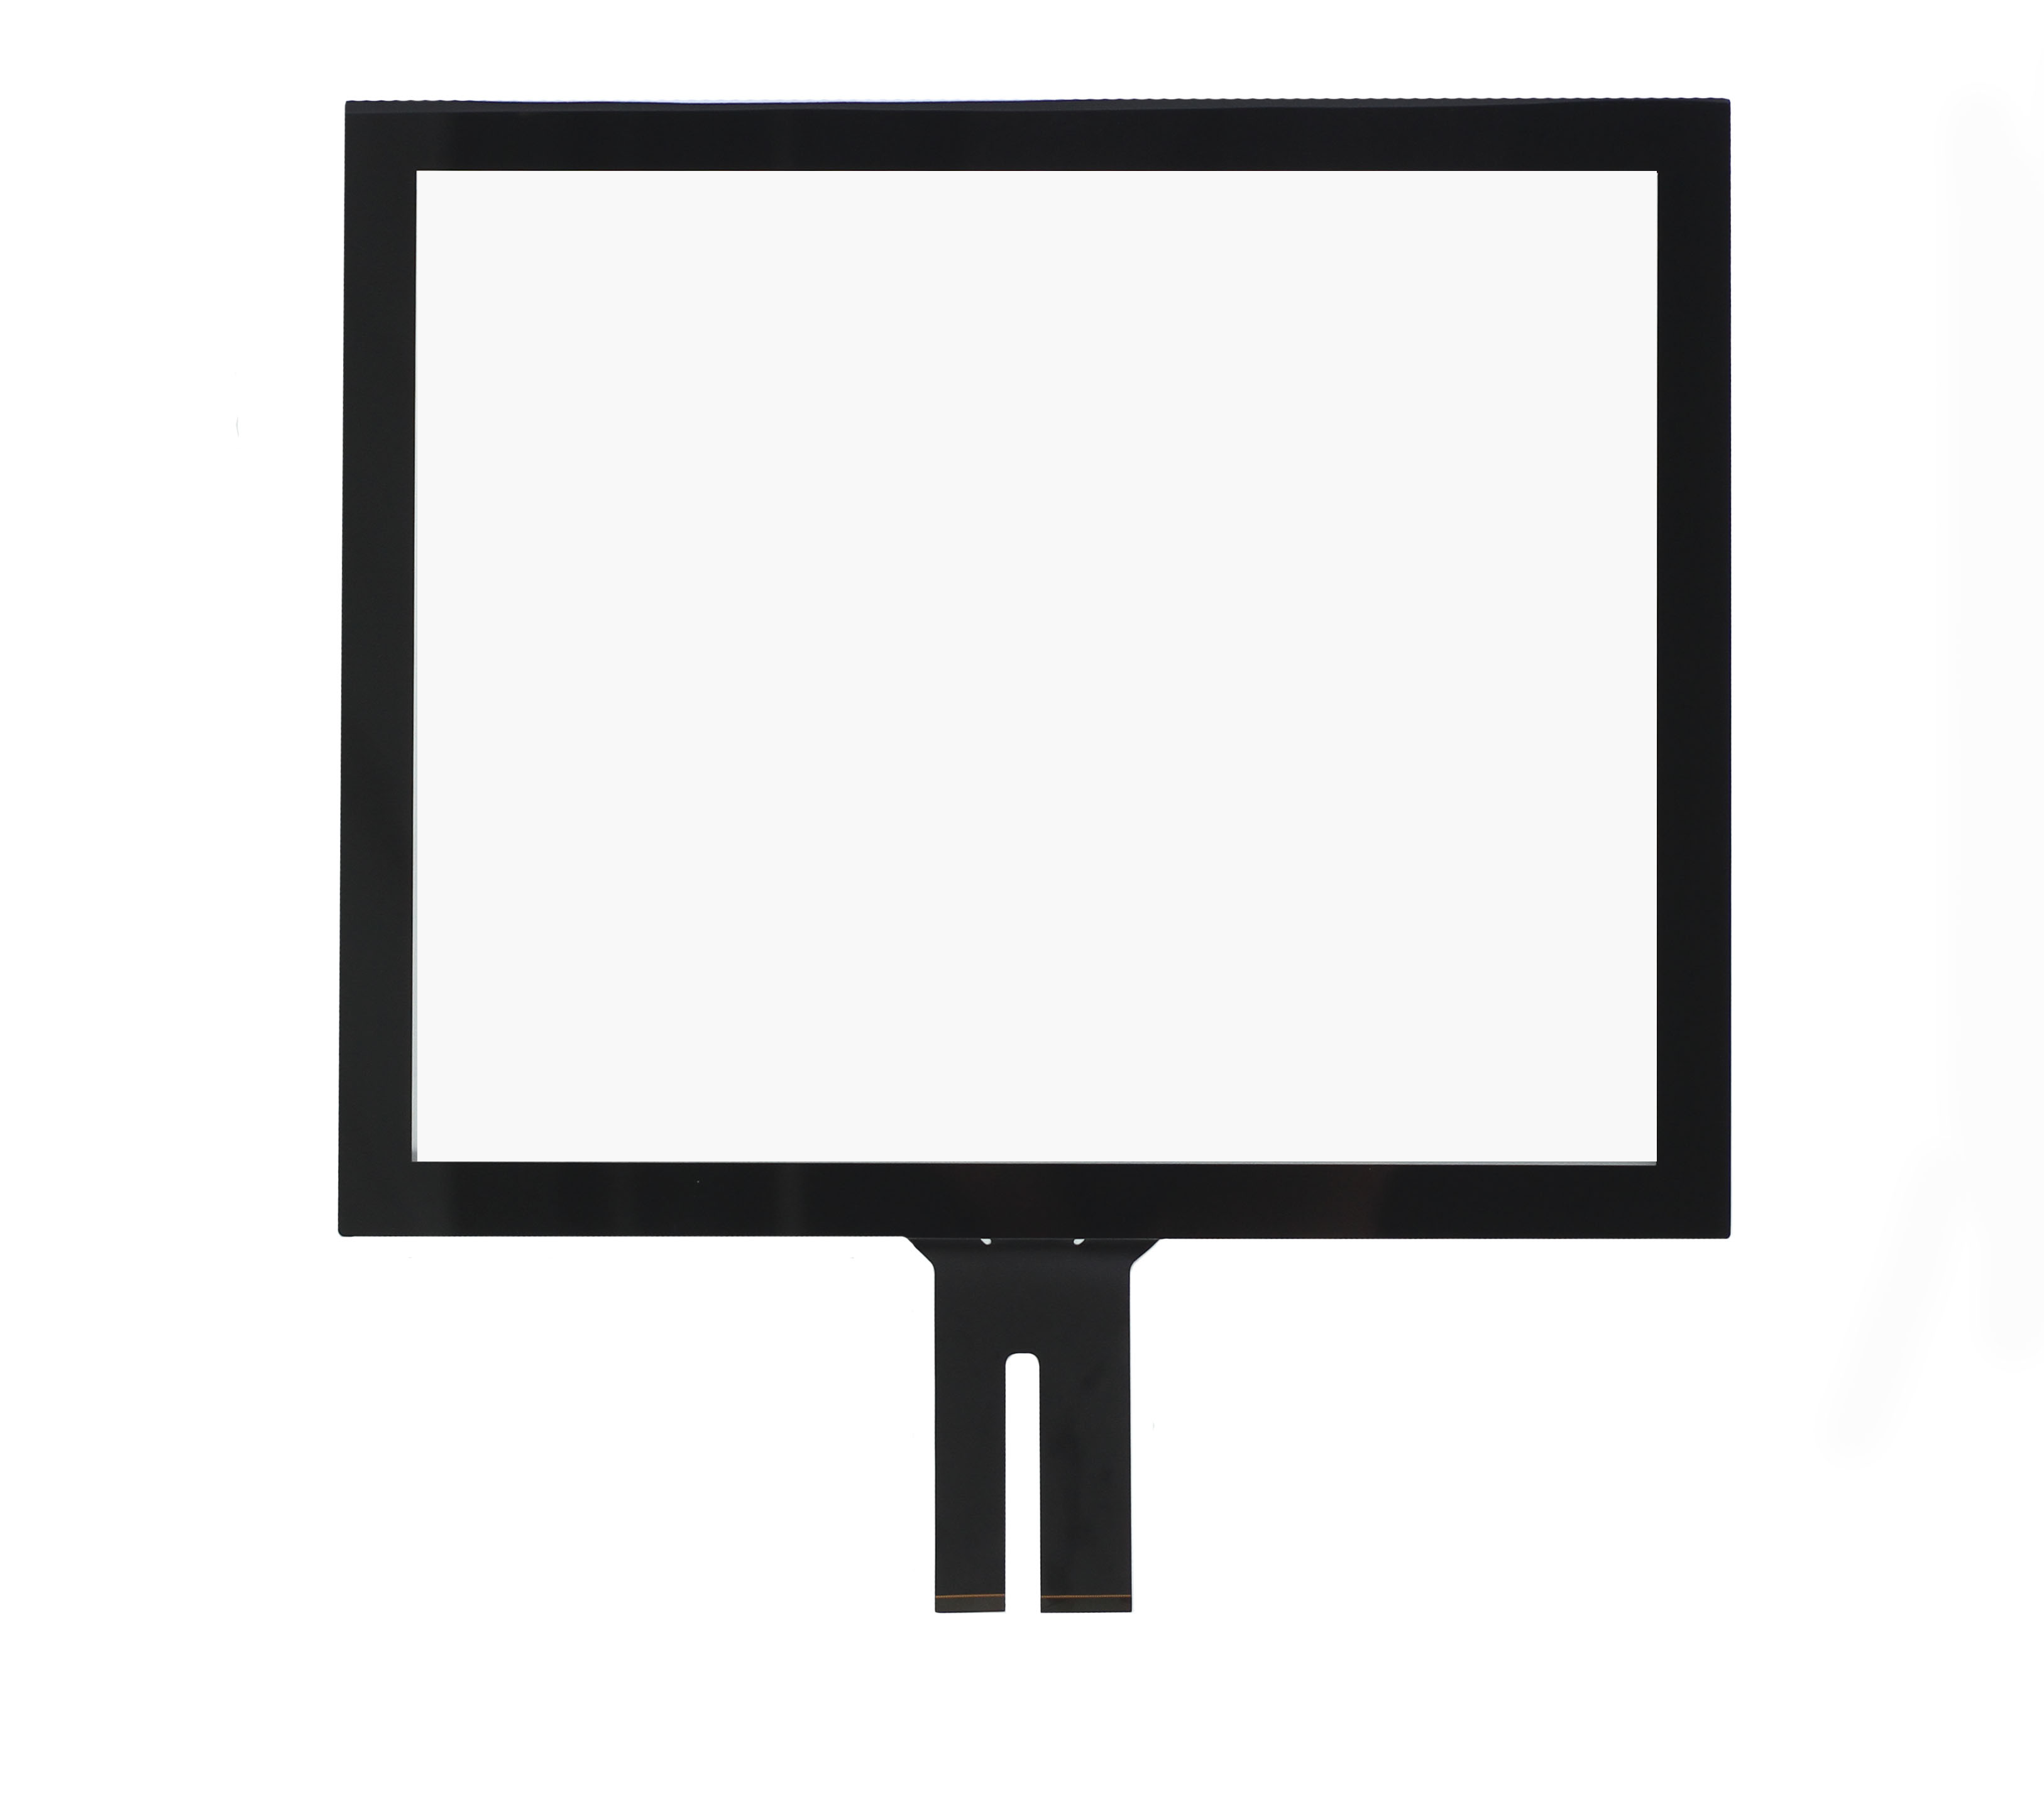 capacitive touch panel Featured Image